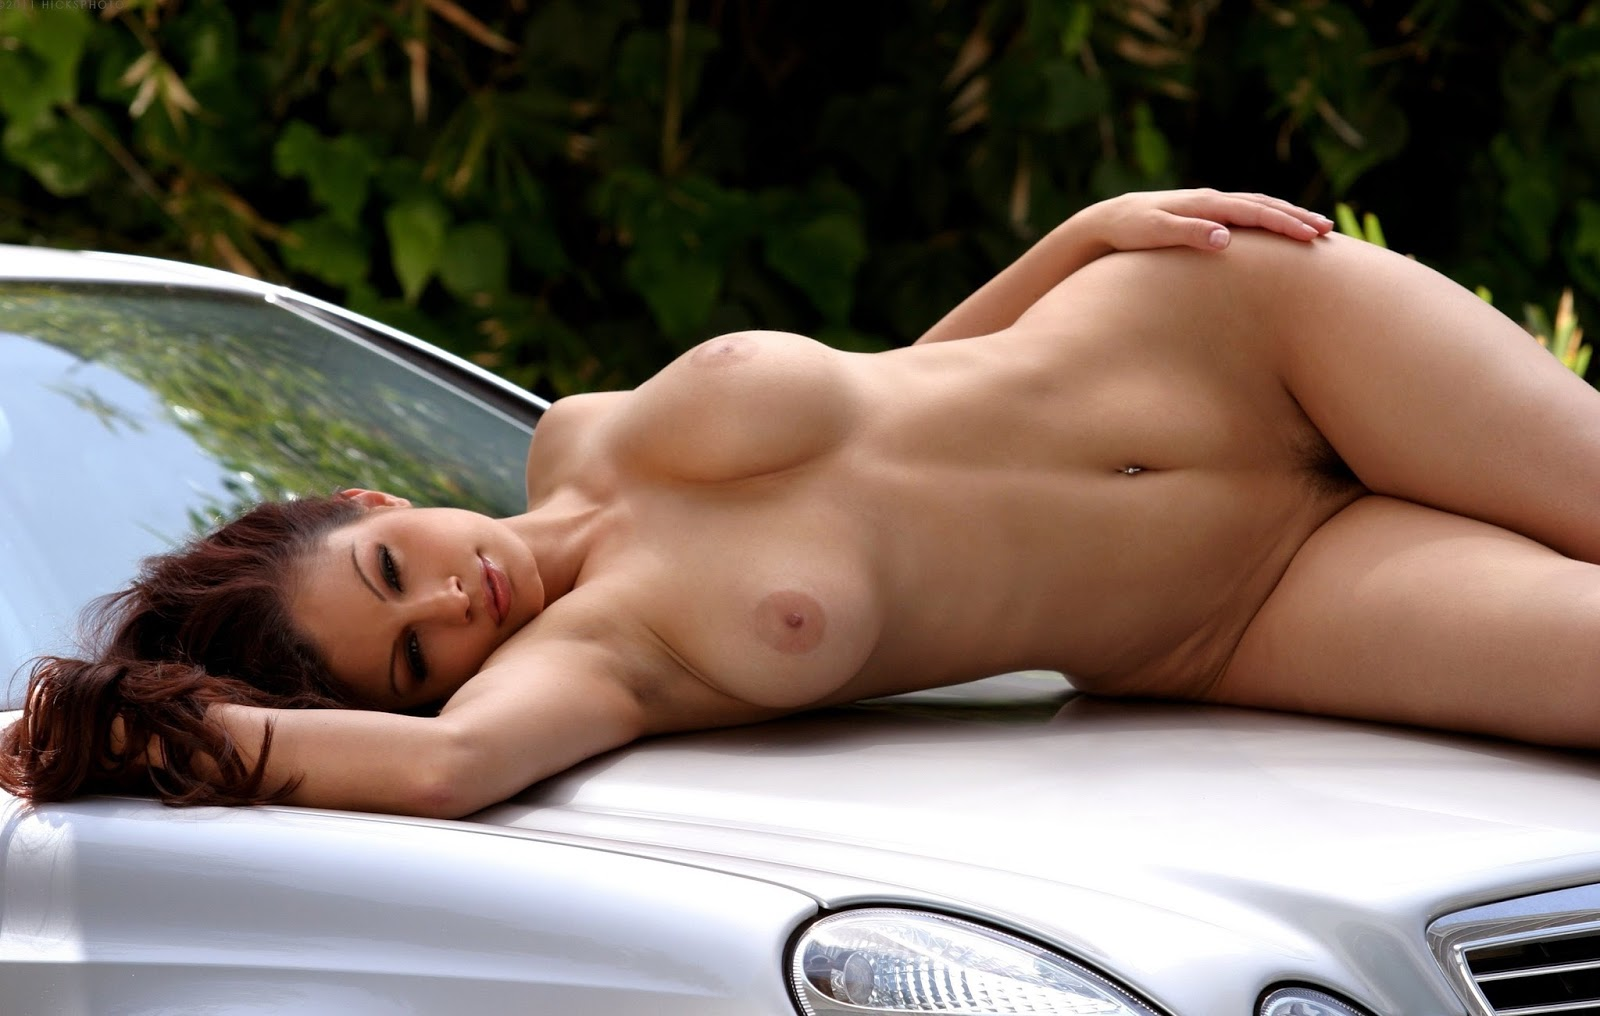 Nude hot girls without clothes